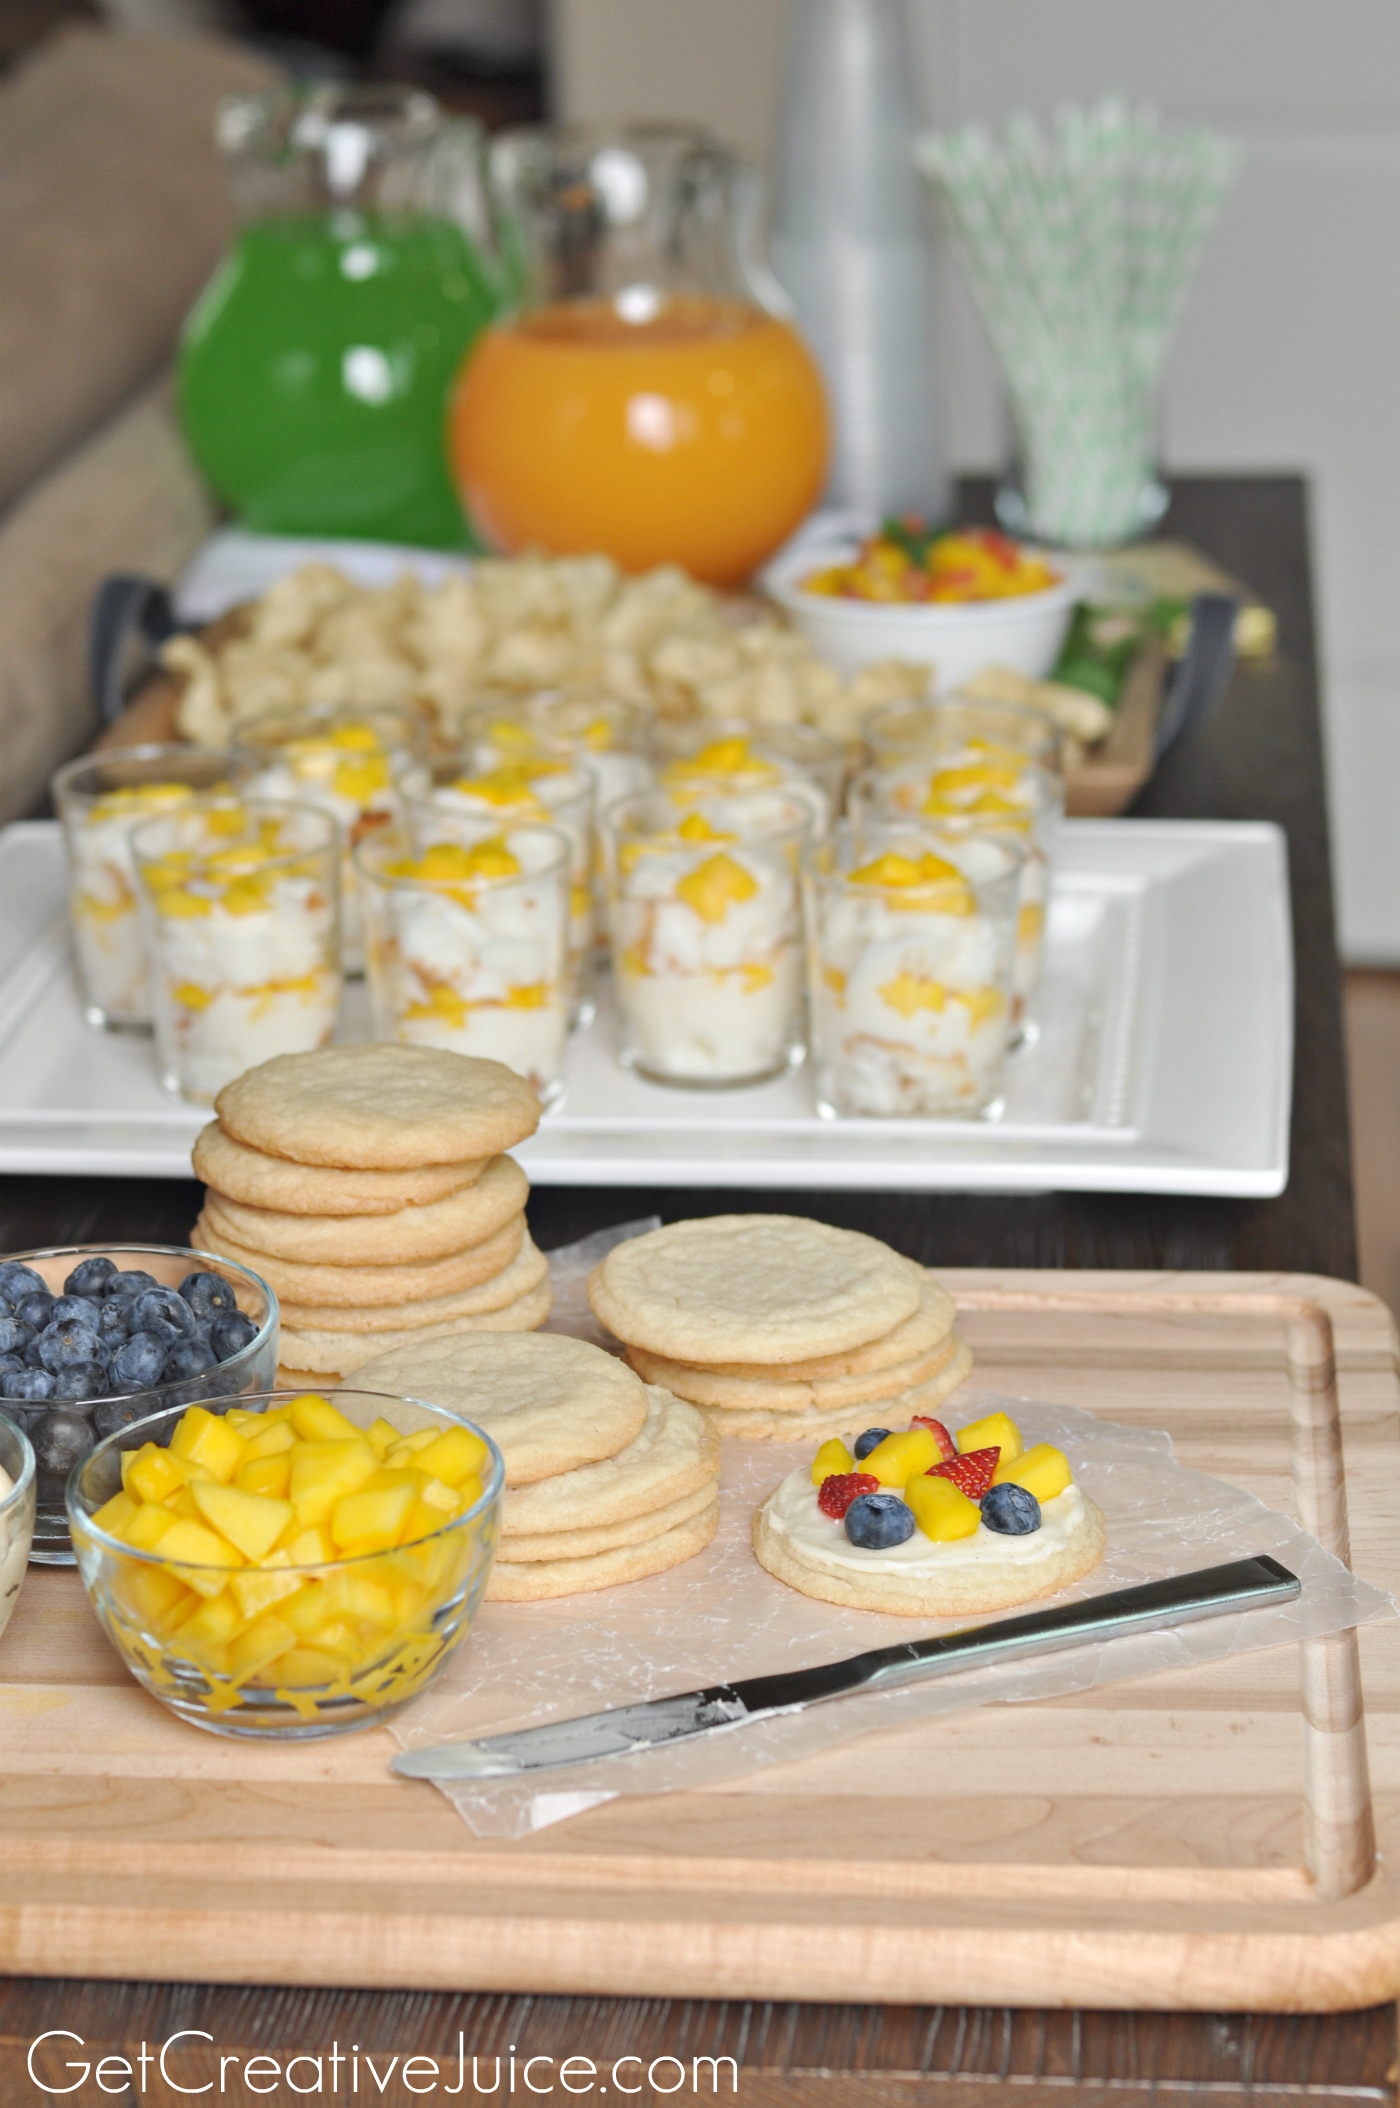 Jungle book party creative juice jungle book party food ideas mango recipes forumfinder Gallery